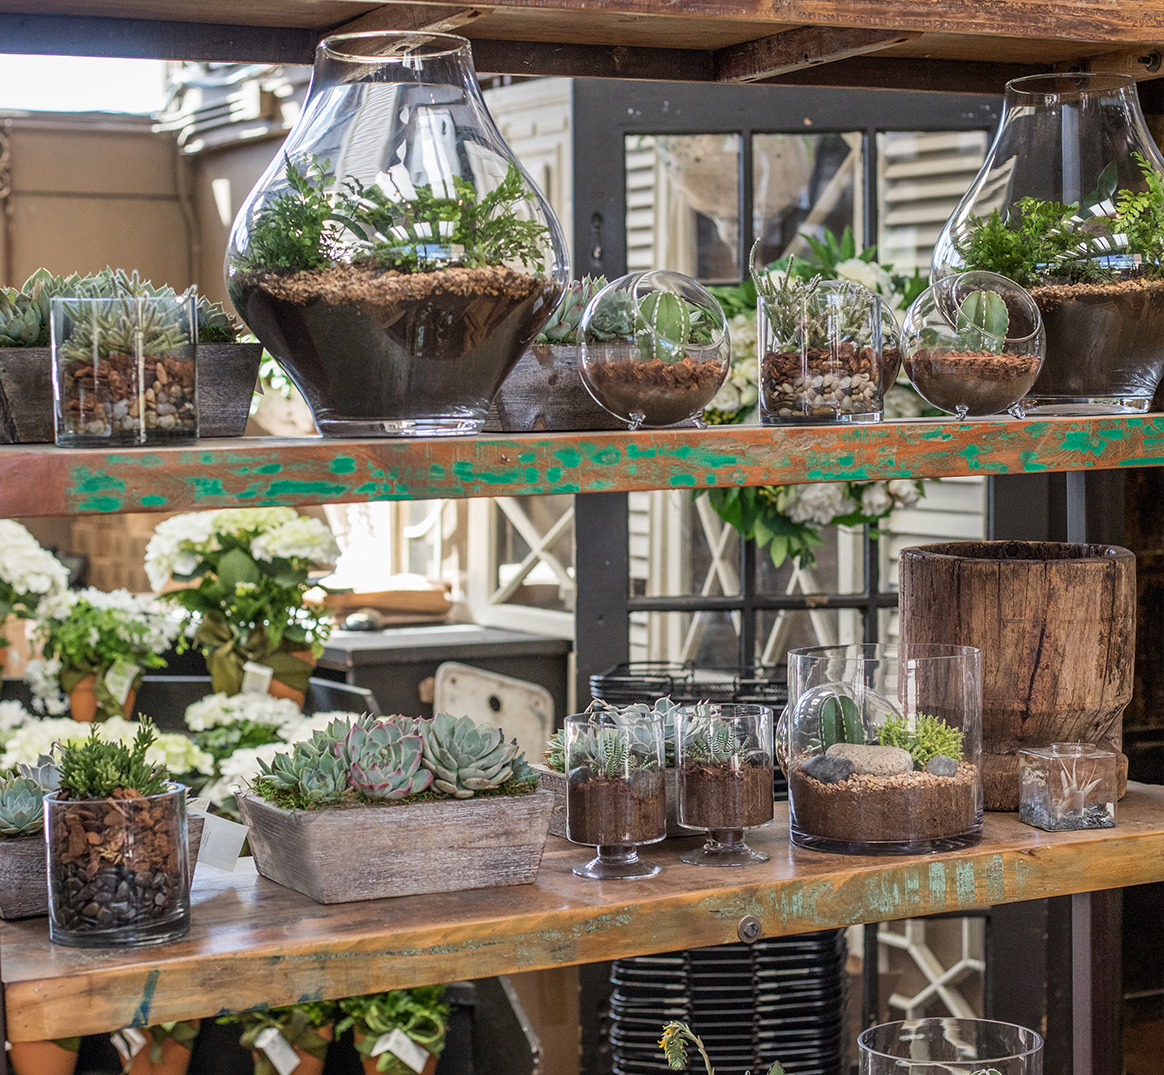 An image of glass terrariums